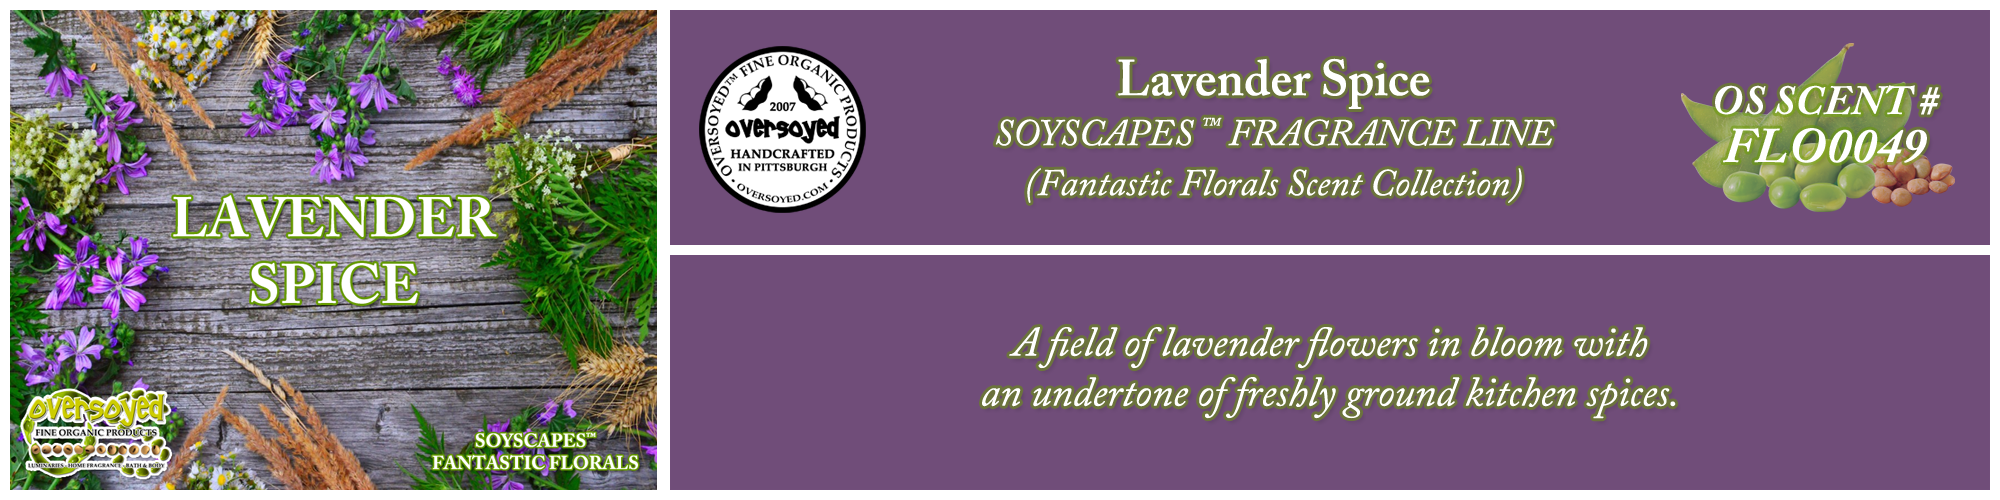 Lavender Spice Handcrafted Products Collection